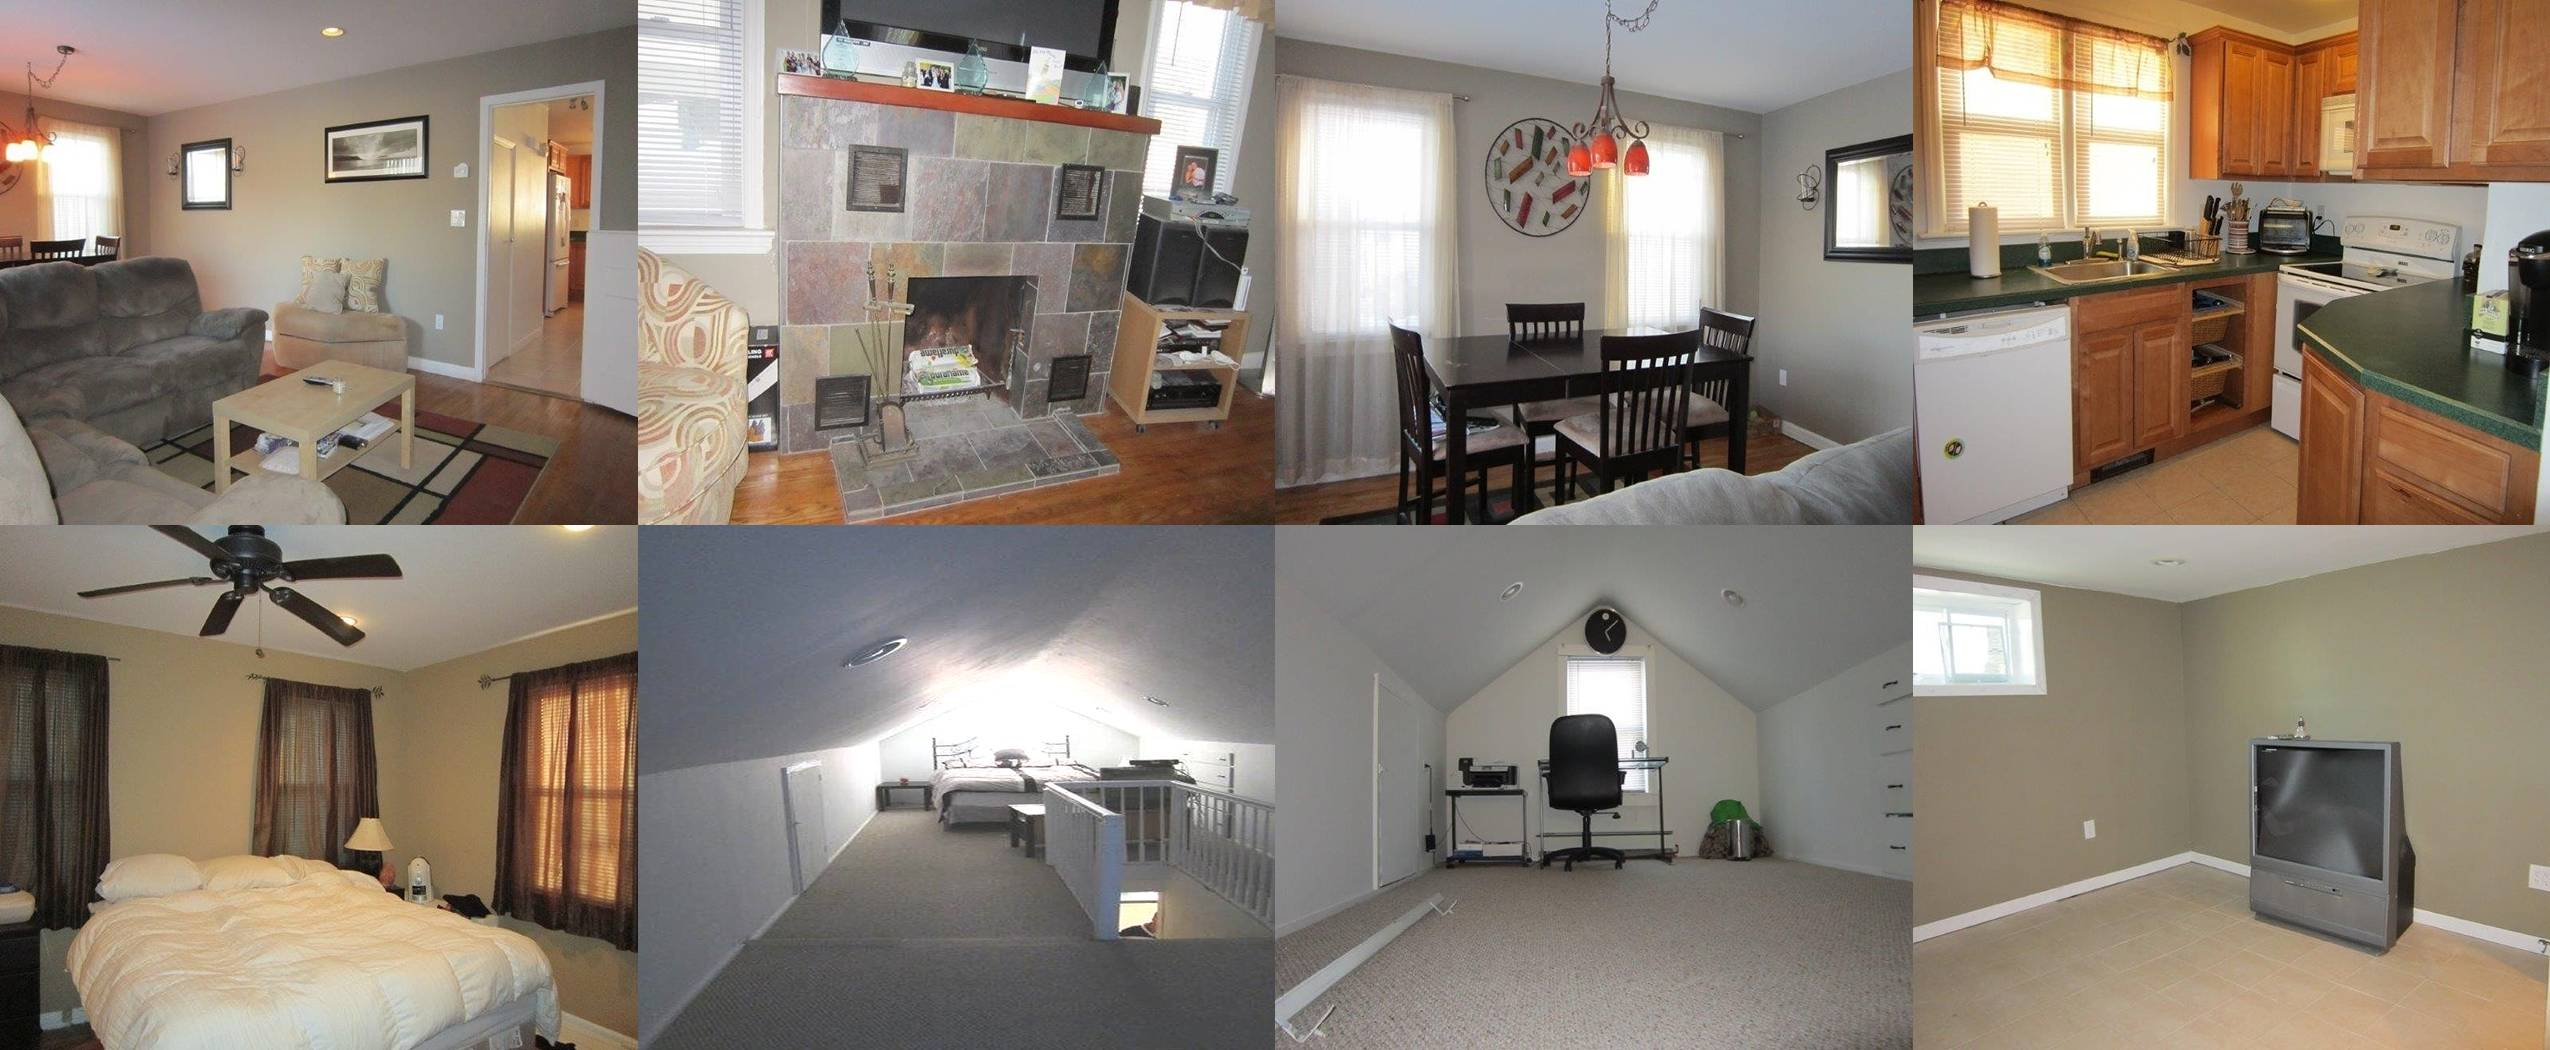 2 Bedroom 2 Bath Cape For Rent In Parsippany Nj New